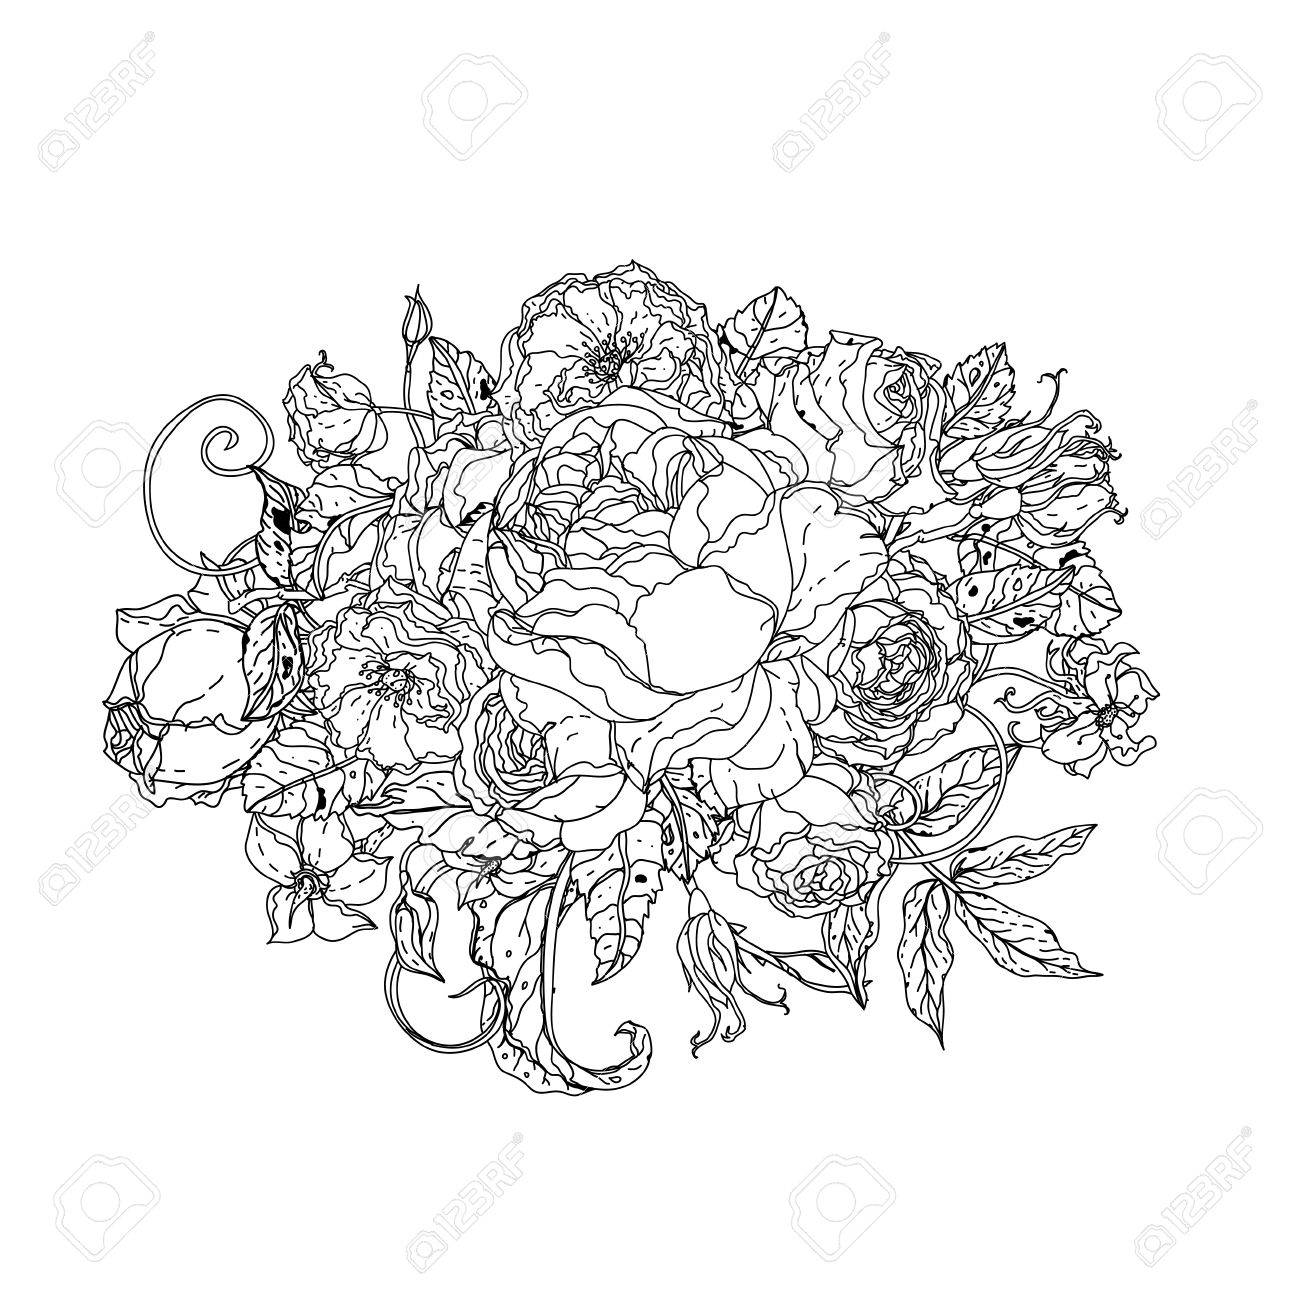 Coloring book for adults ebay - The Mindfulness Colouring Book Ebay Uncolored Colouring Book Style Luxury Roses In Zenart Style Could